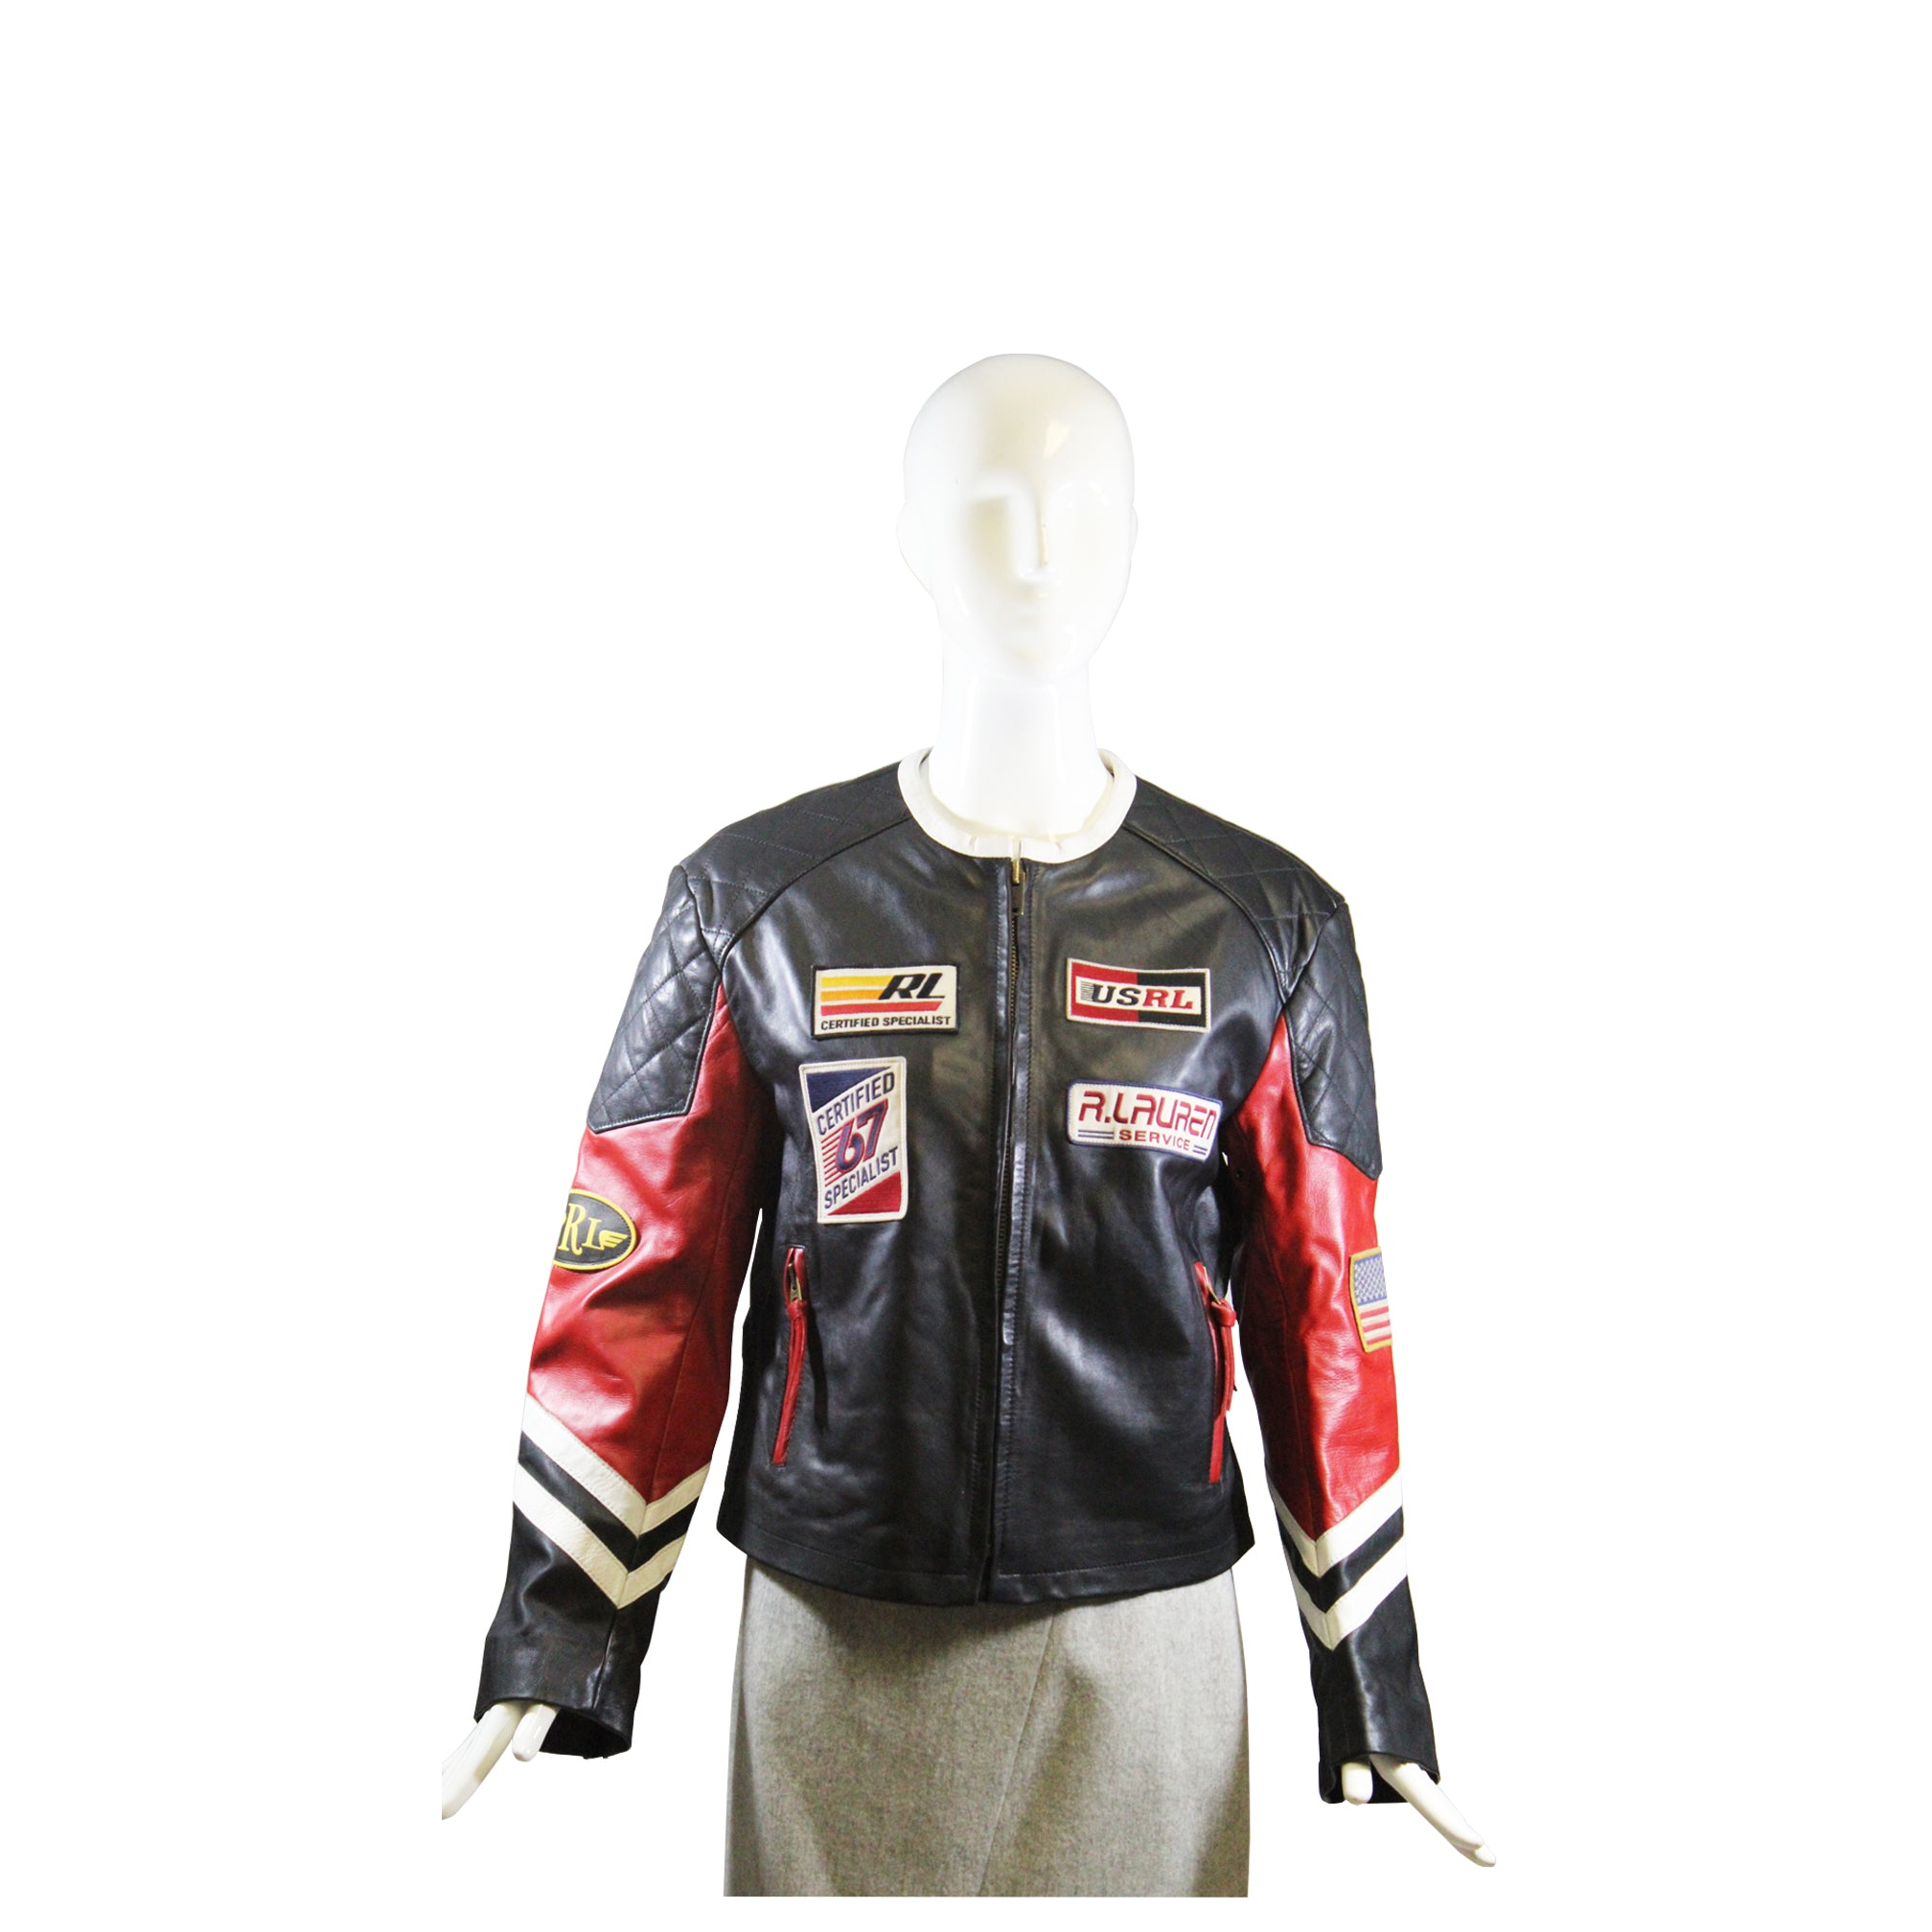 Sold Polo Ralph Lauren Red Black White Patchwork Leather Biker Racin Encore Resale Com